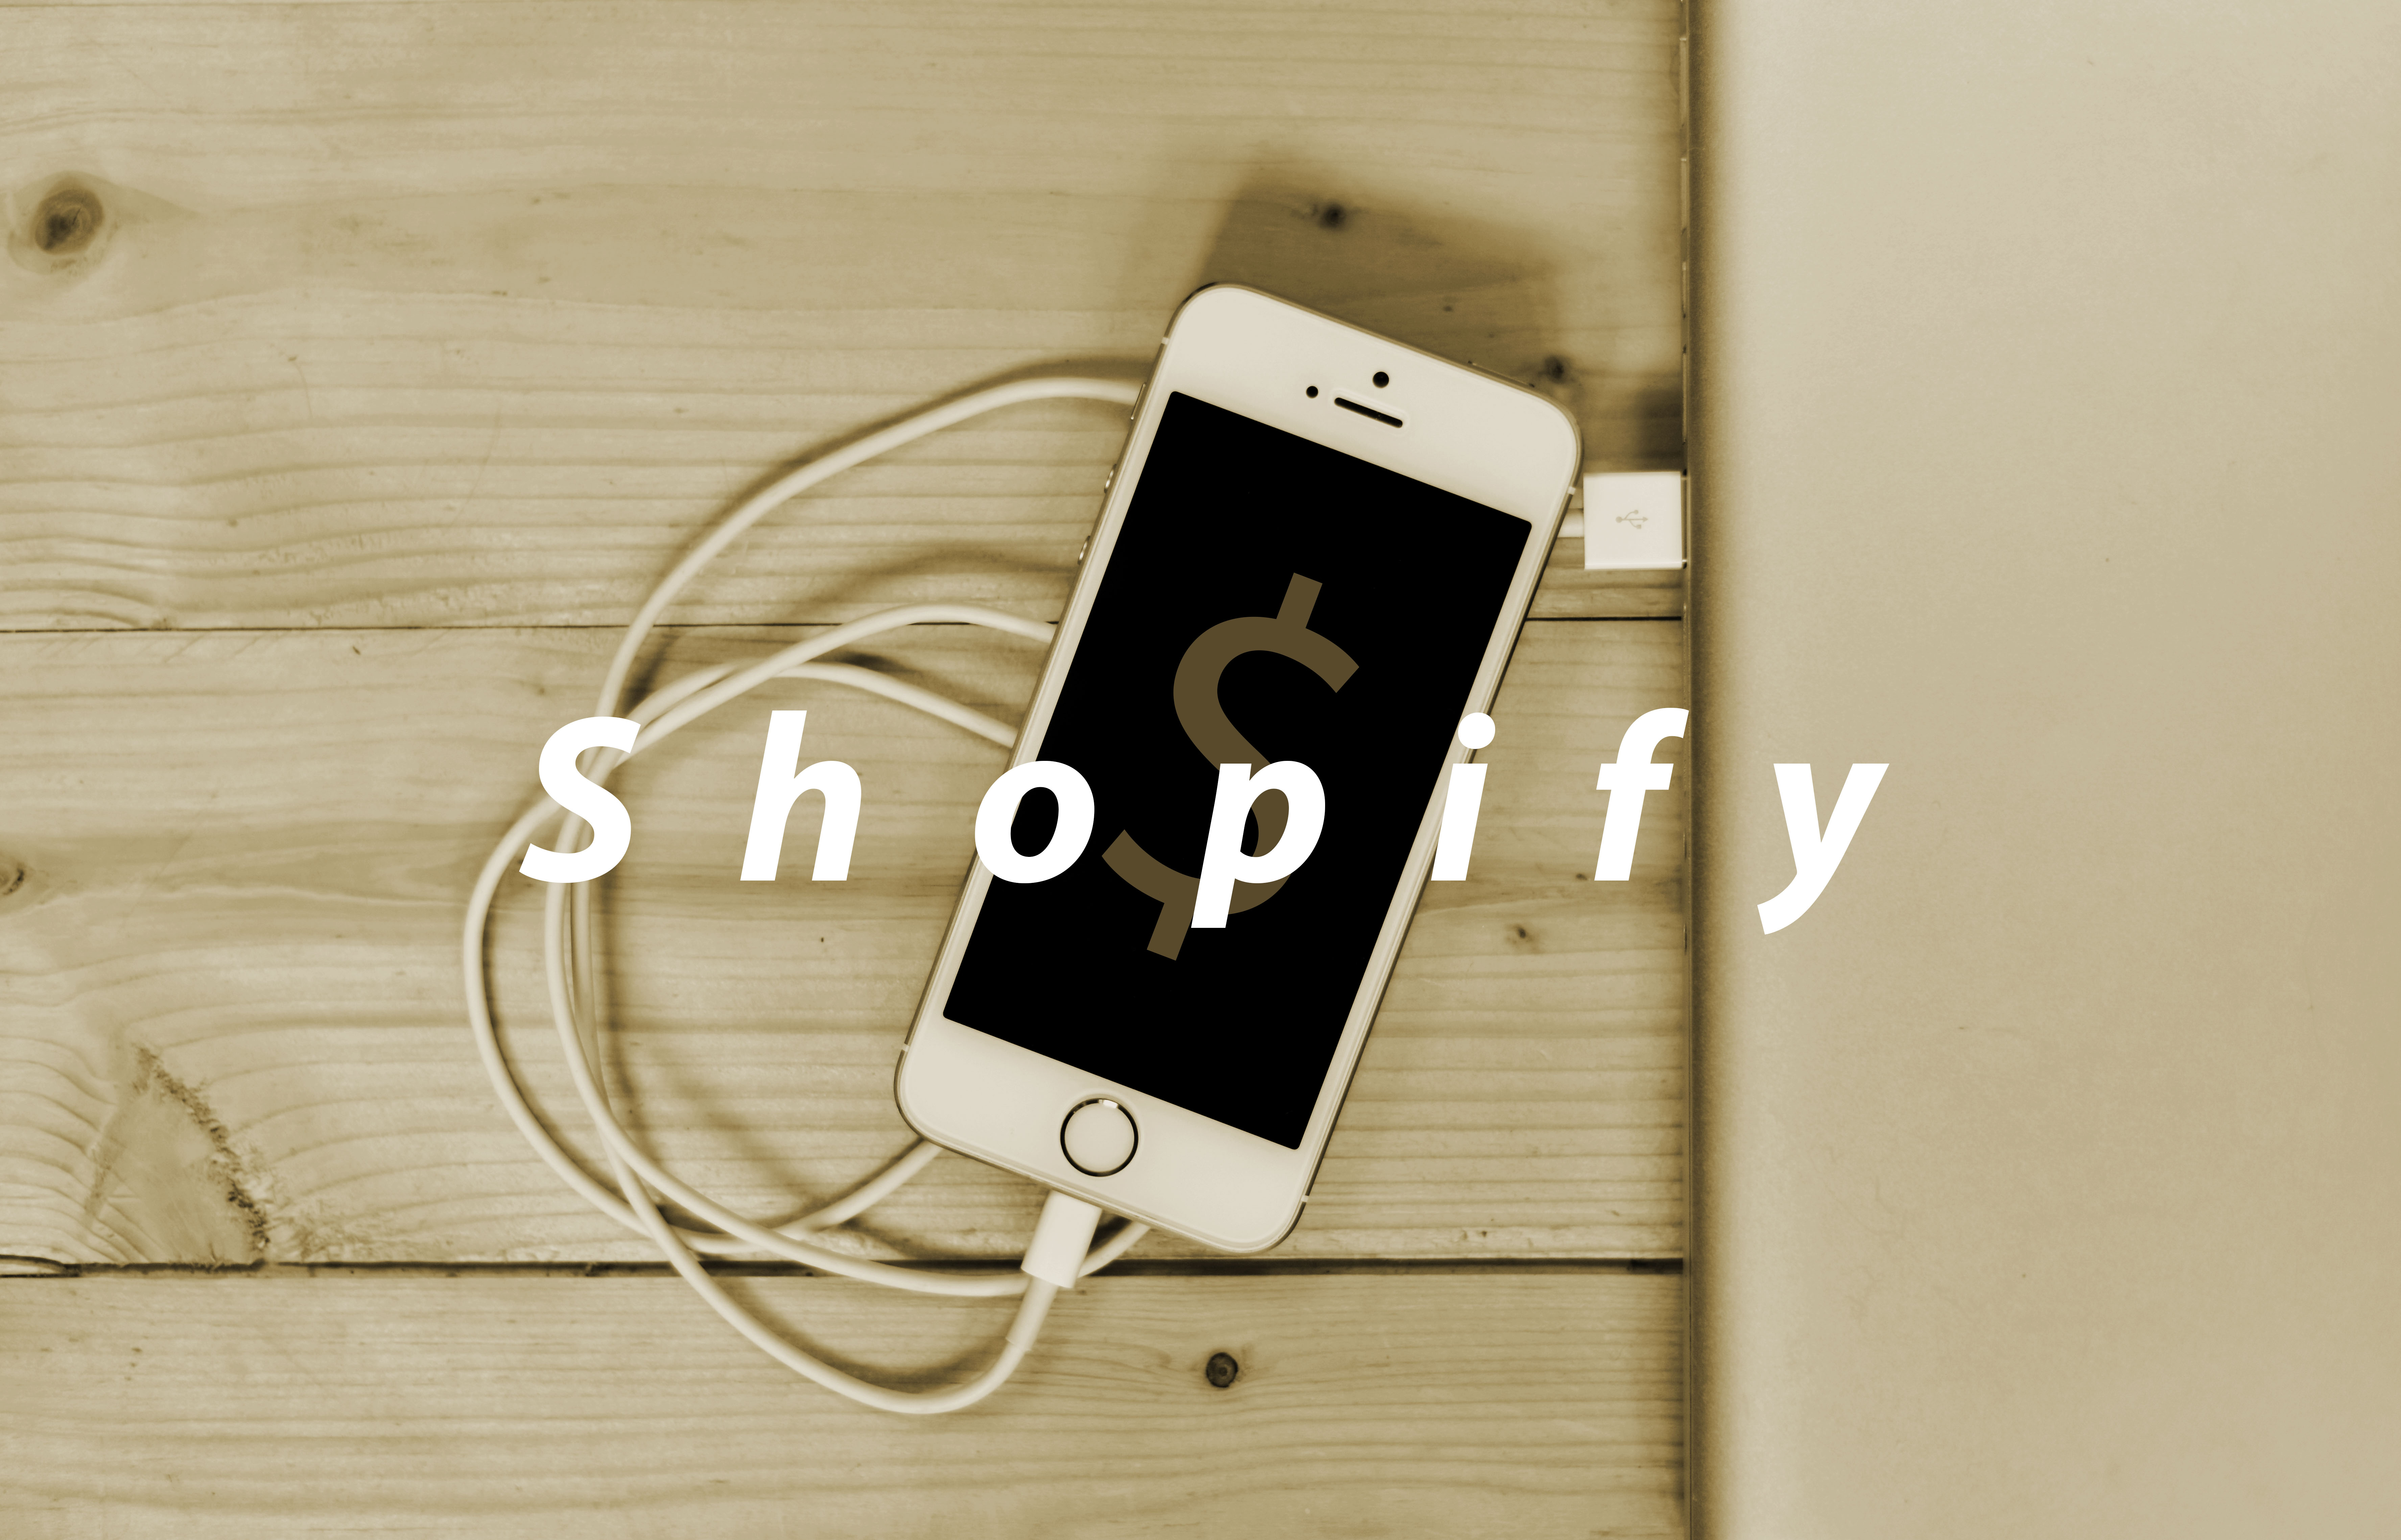 Iphone Plugged Into The Wall With Shopify Text Overlaid Over The Image.